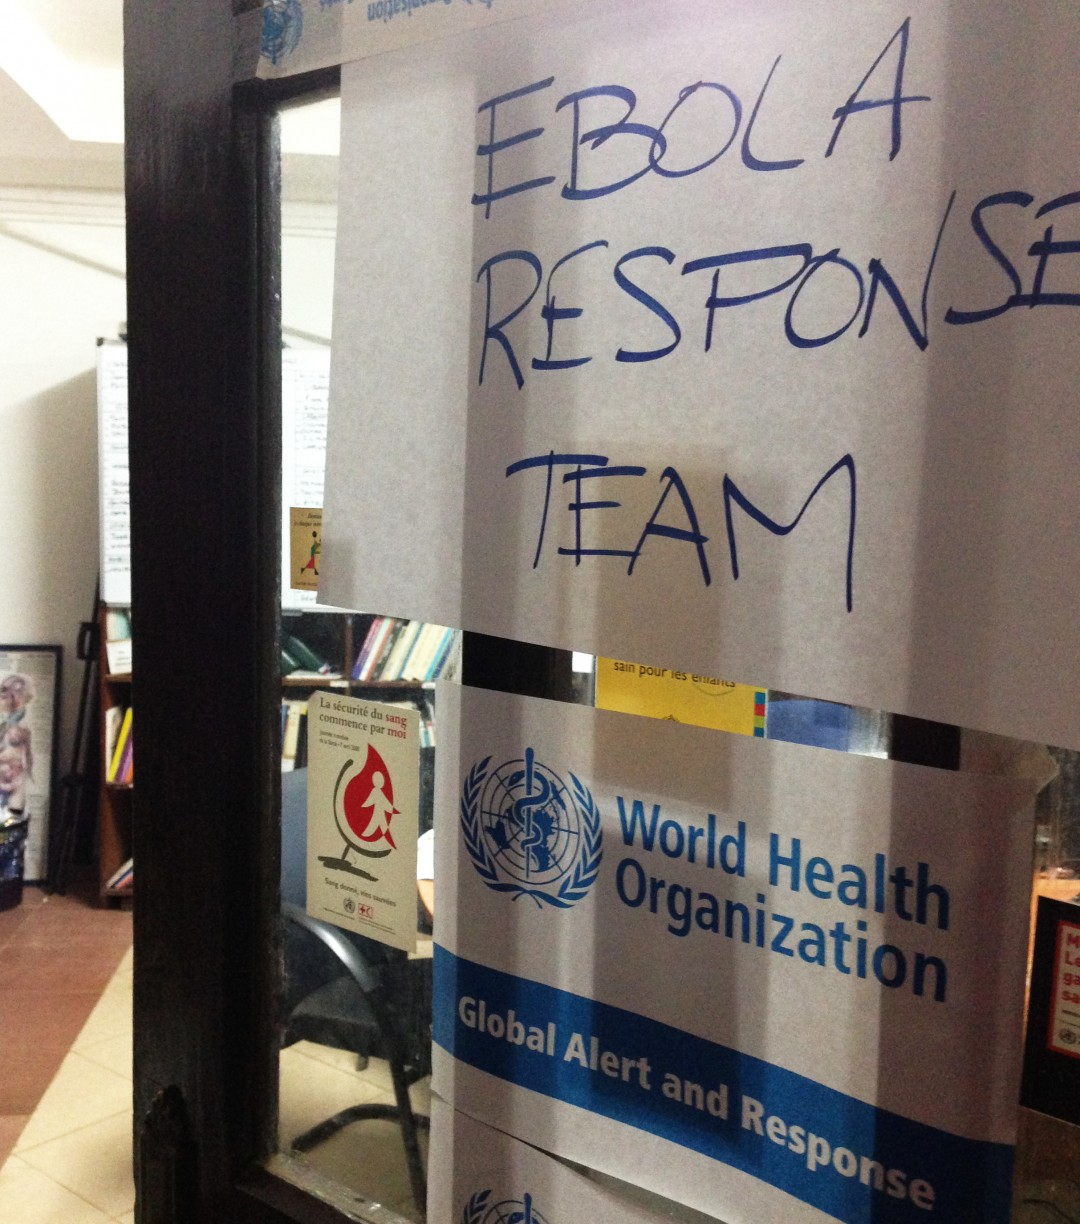 Ebola World Health Organization